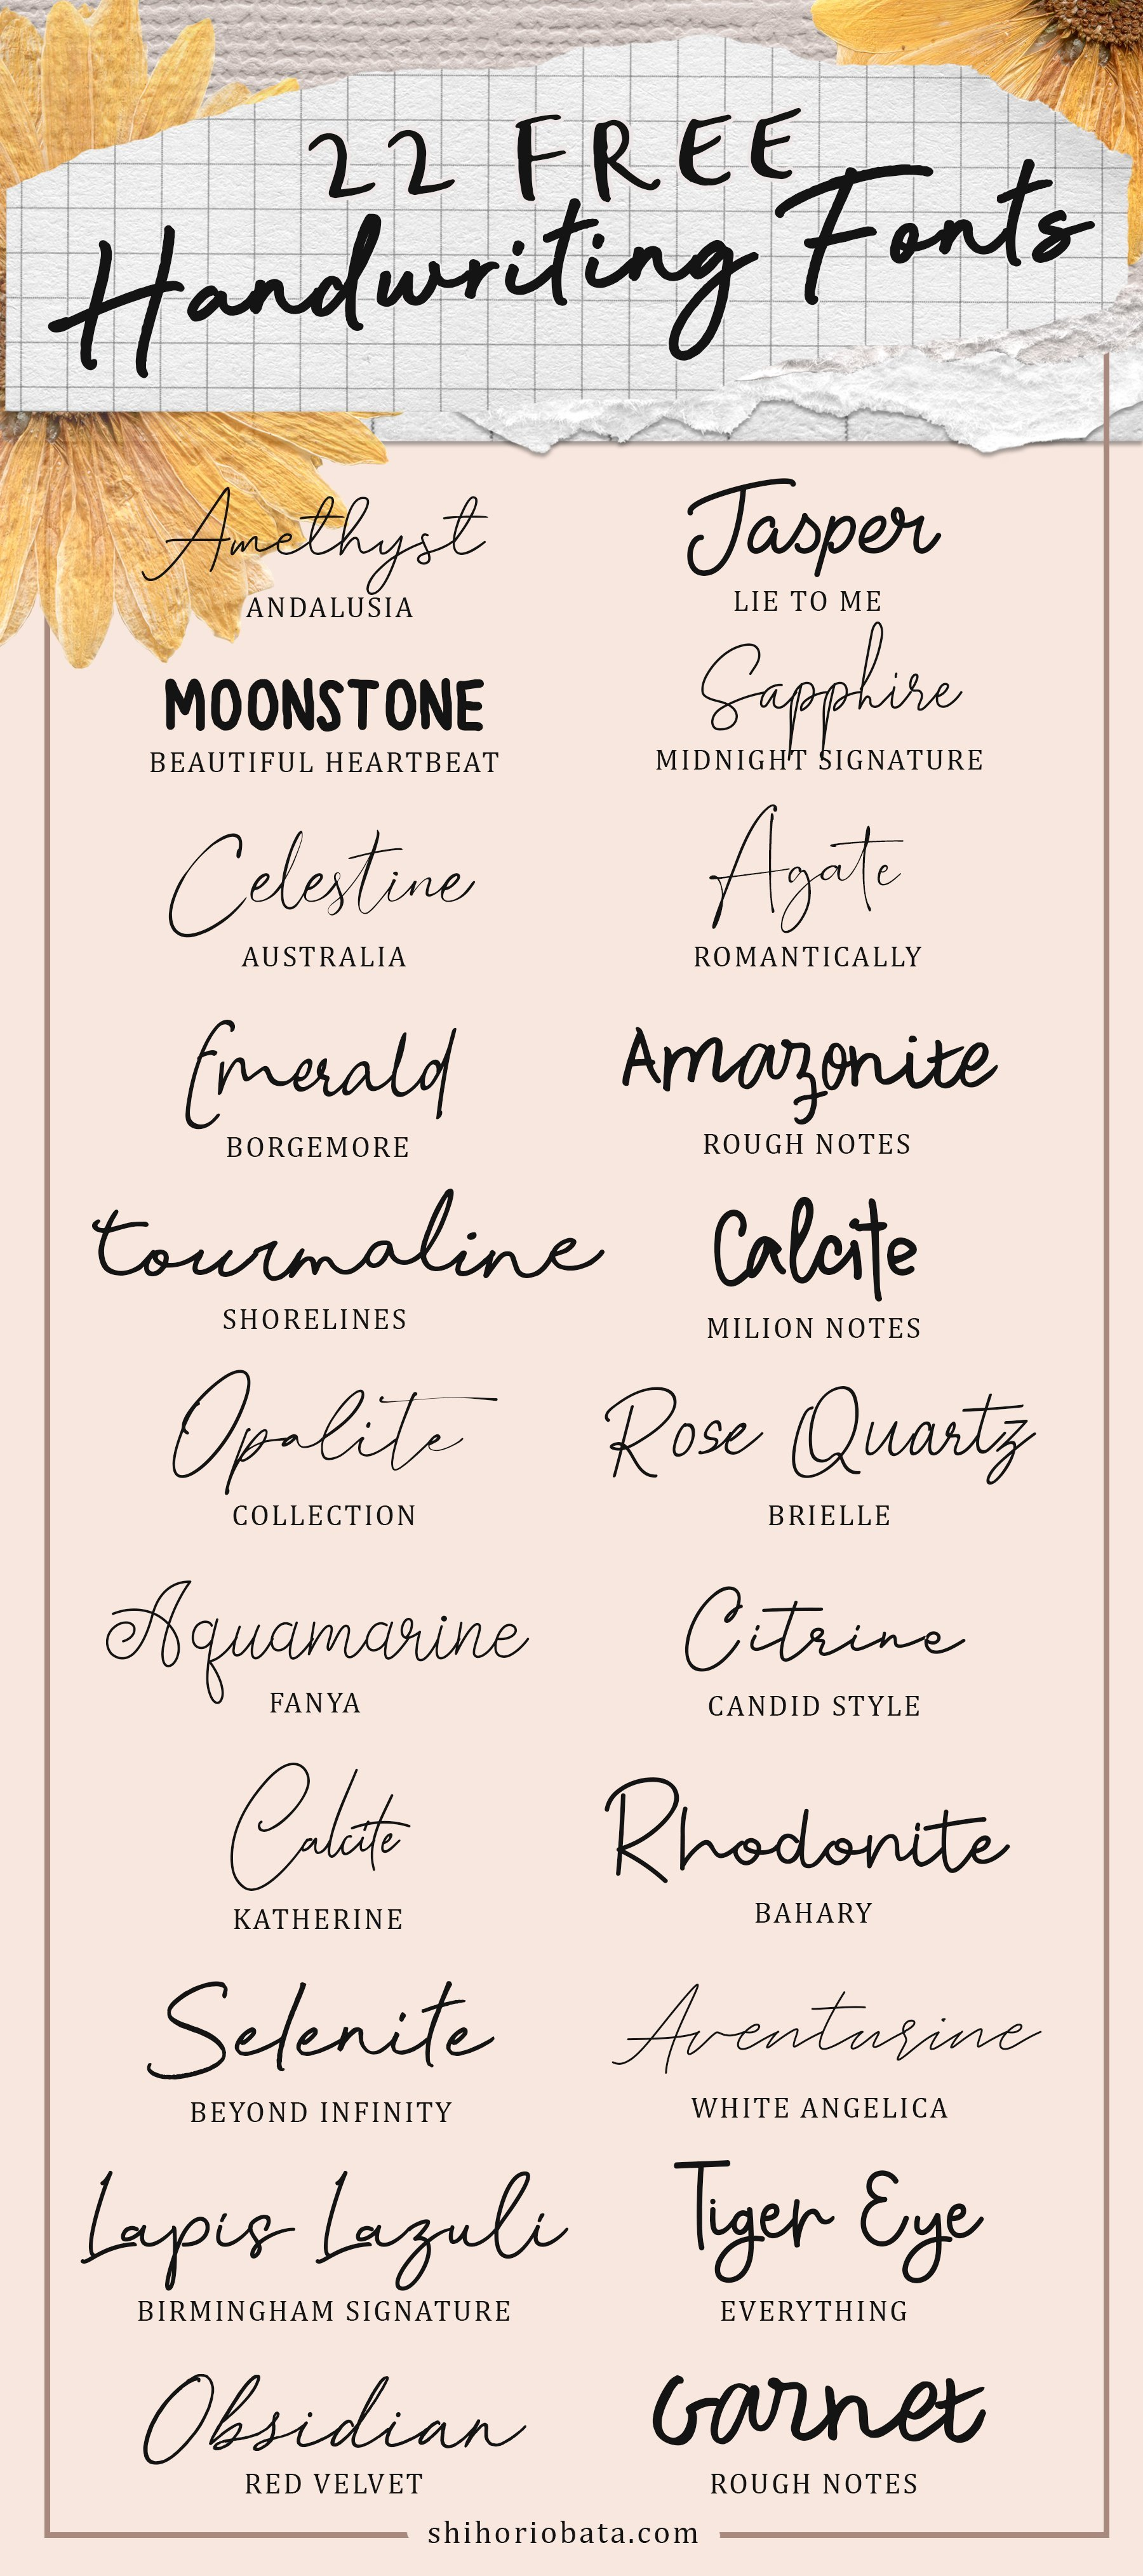 22 Free Handwriting Fonts #fonts